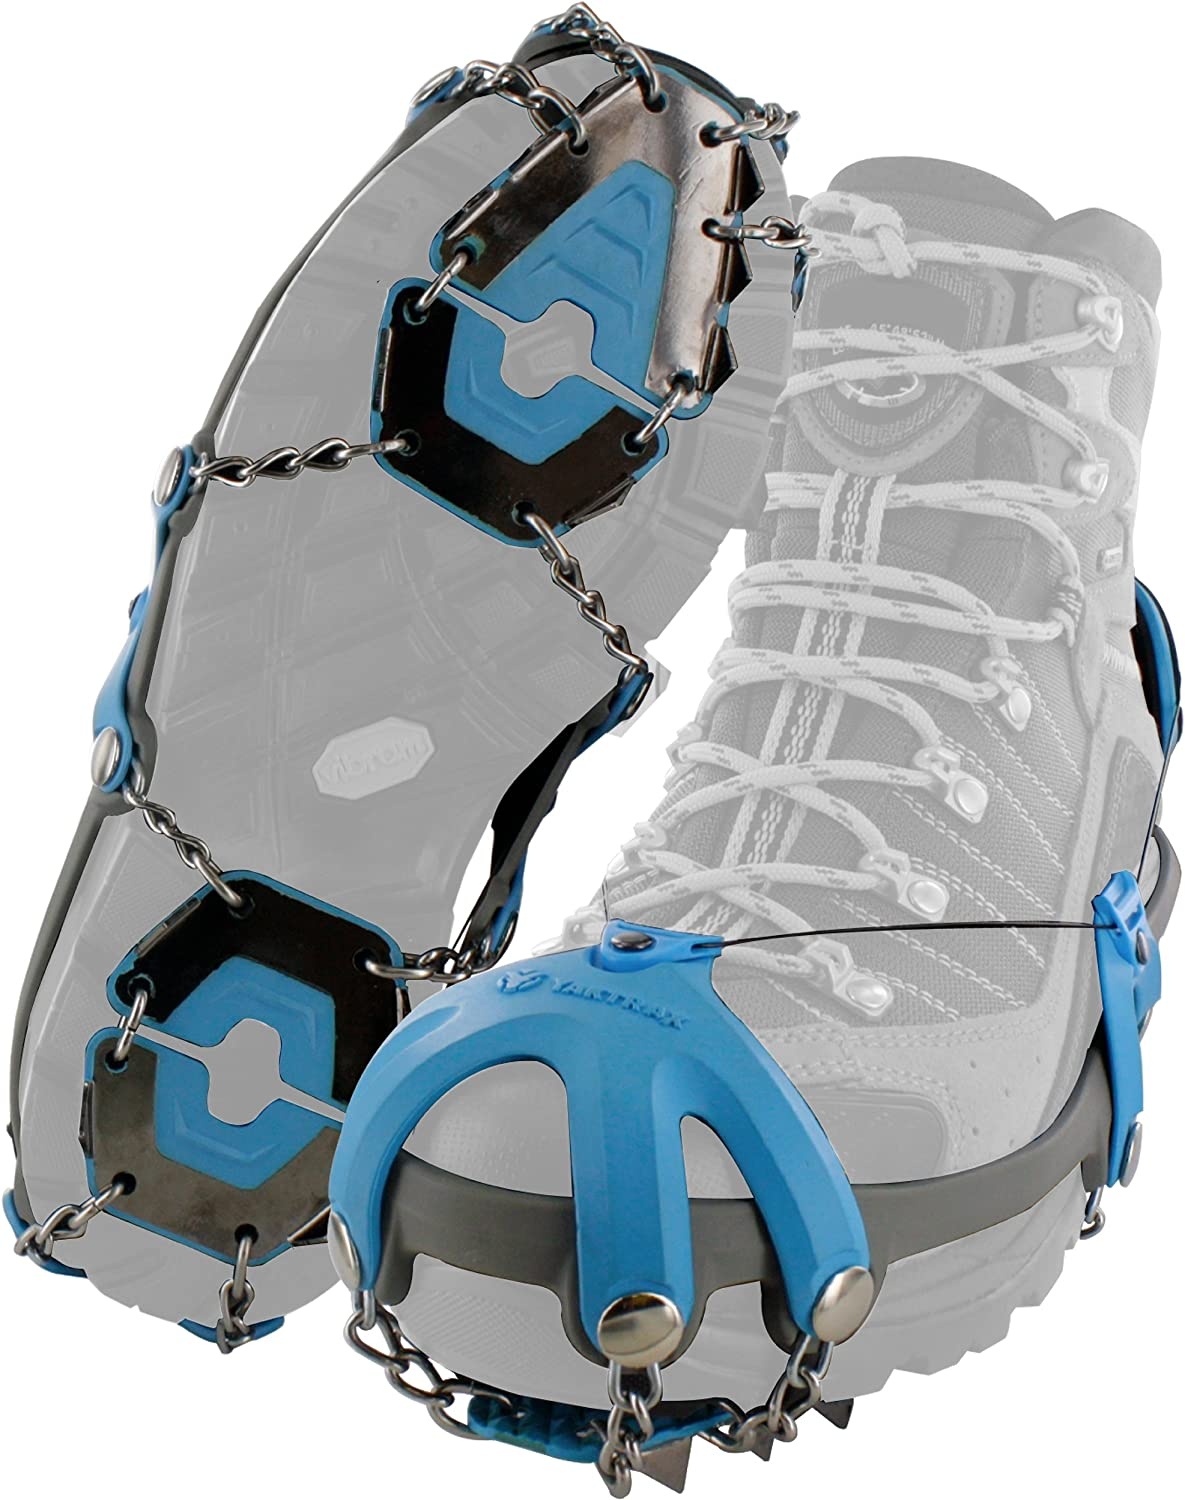 Yaktrax Summit Heavy Duty Traction Cleats with Carbon Steel Spikes for Snow and Ice (1 Pair)